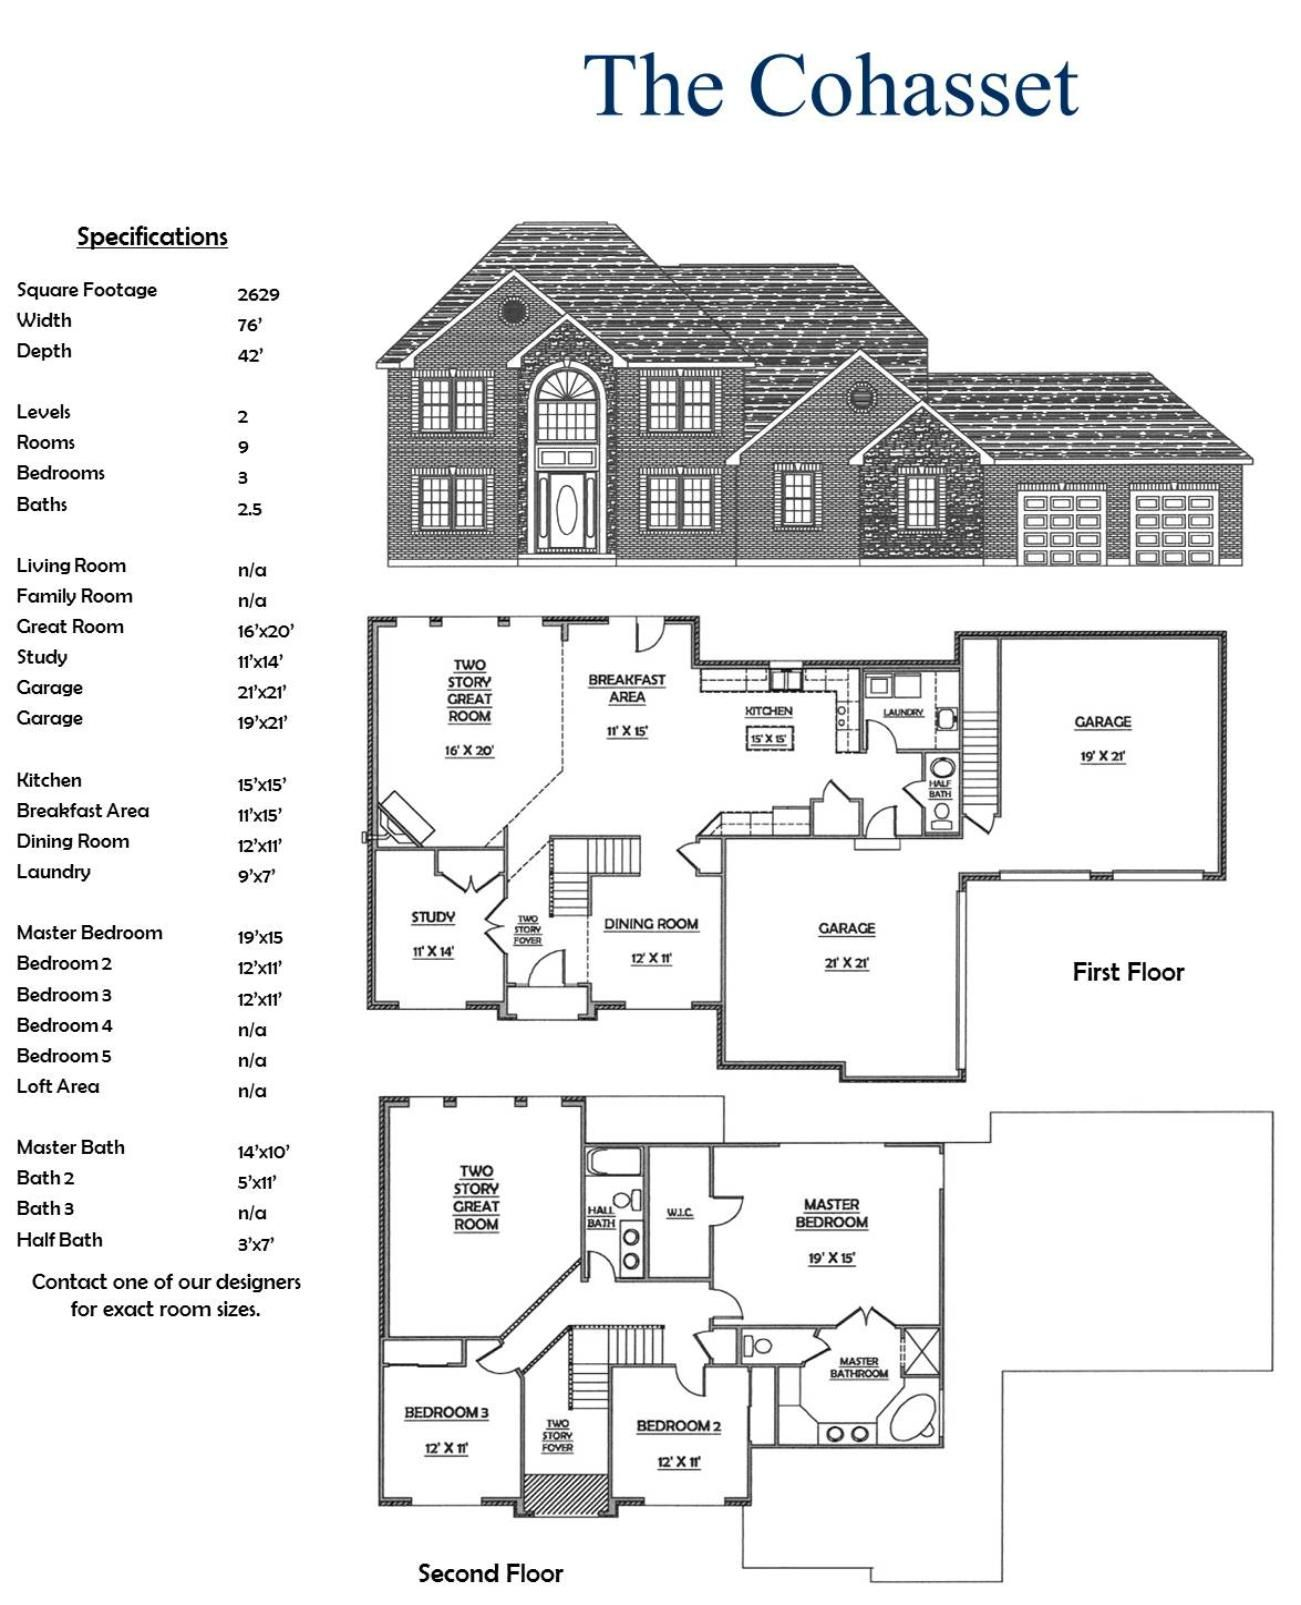 Two Story 3 Bedroom 2.5 Bath House floor plans, Family